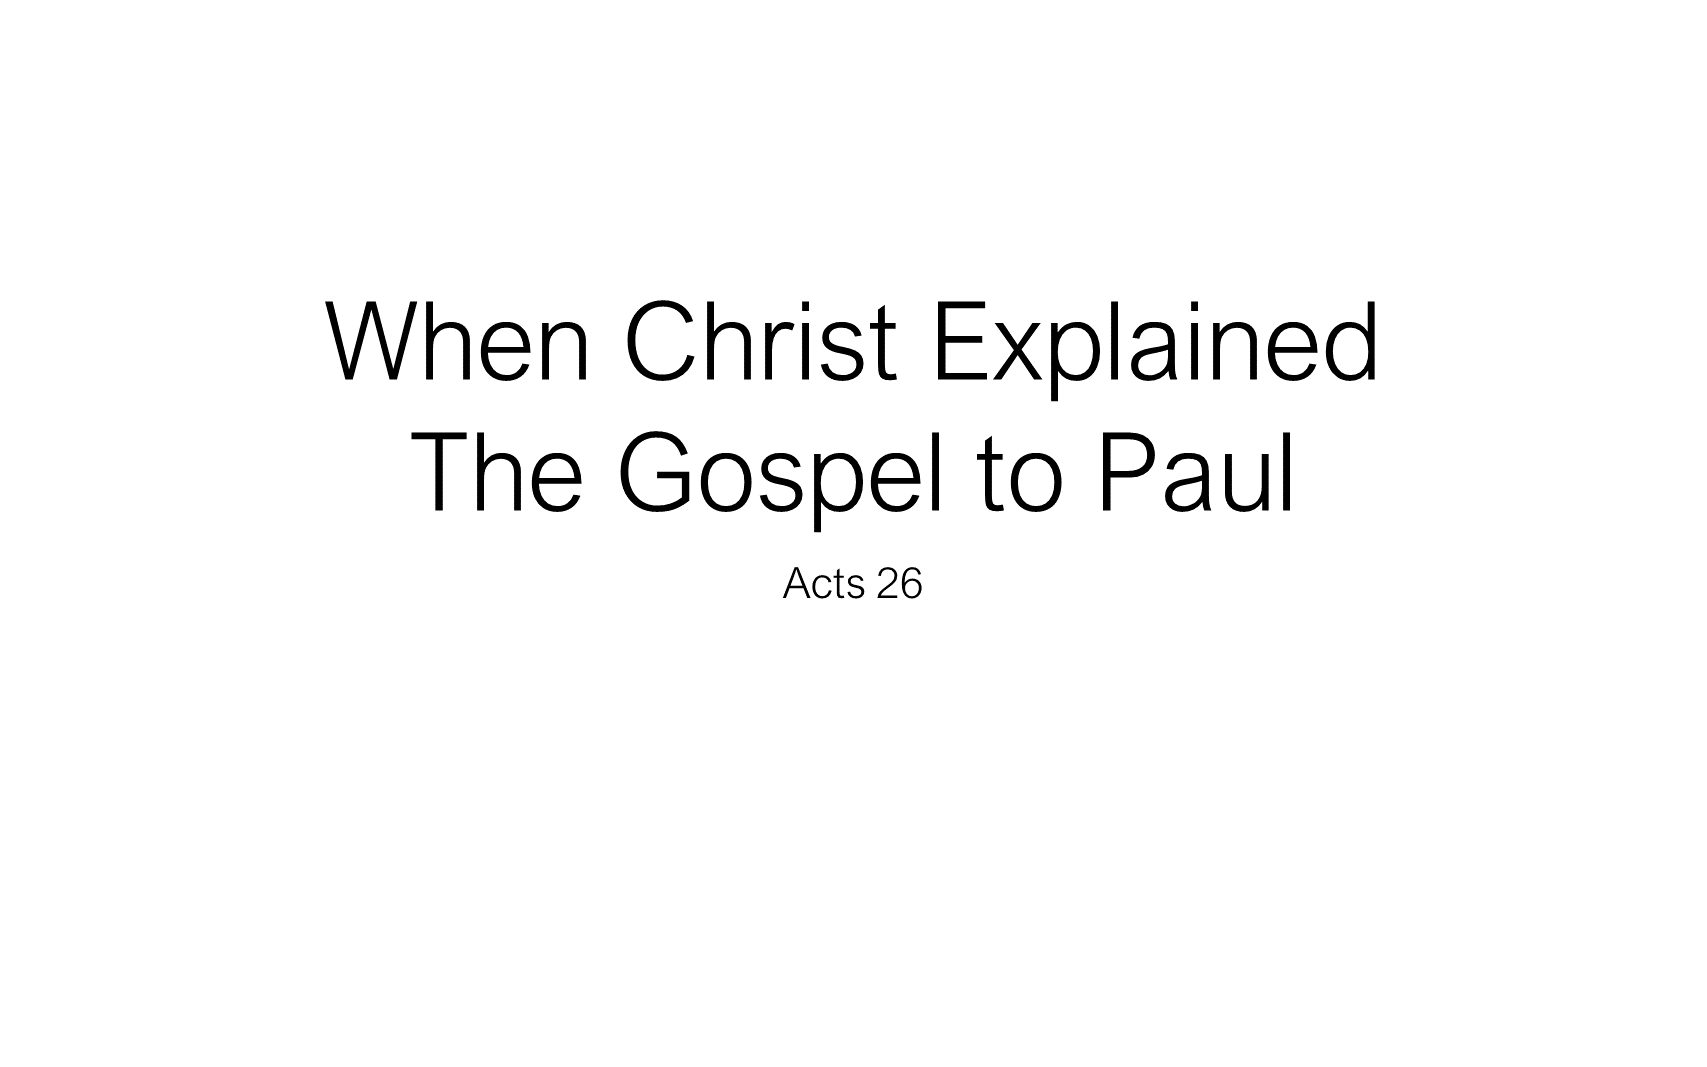 The Discipline Of Disciple-Making - When Christ Explained